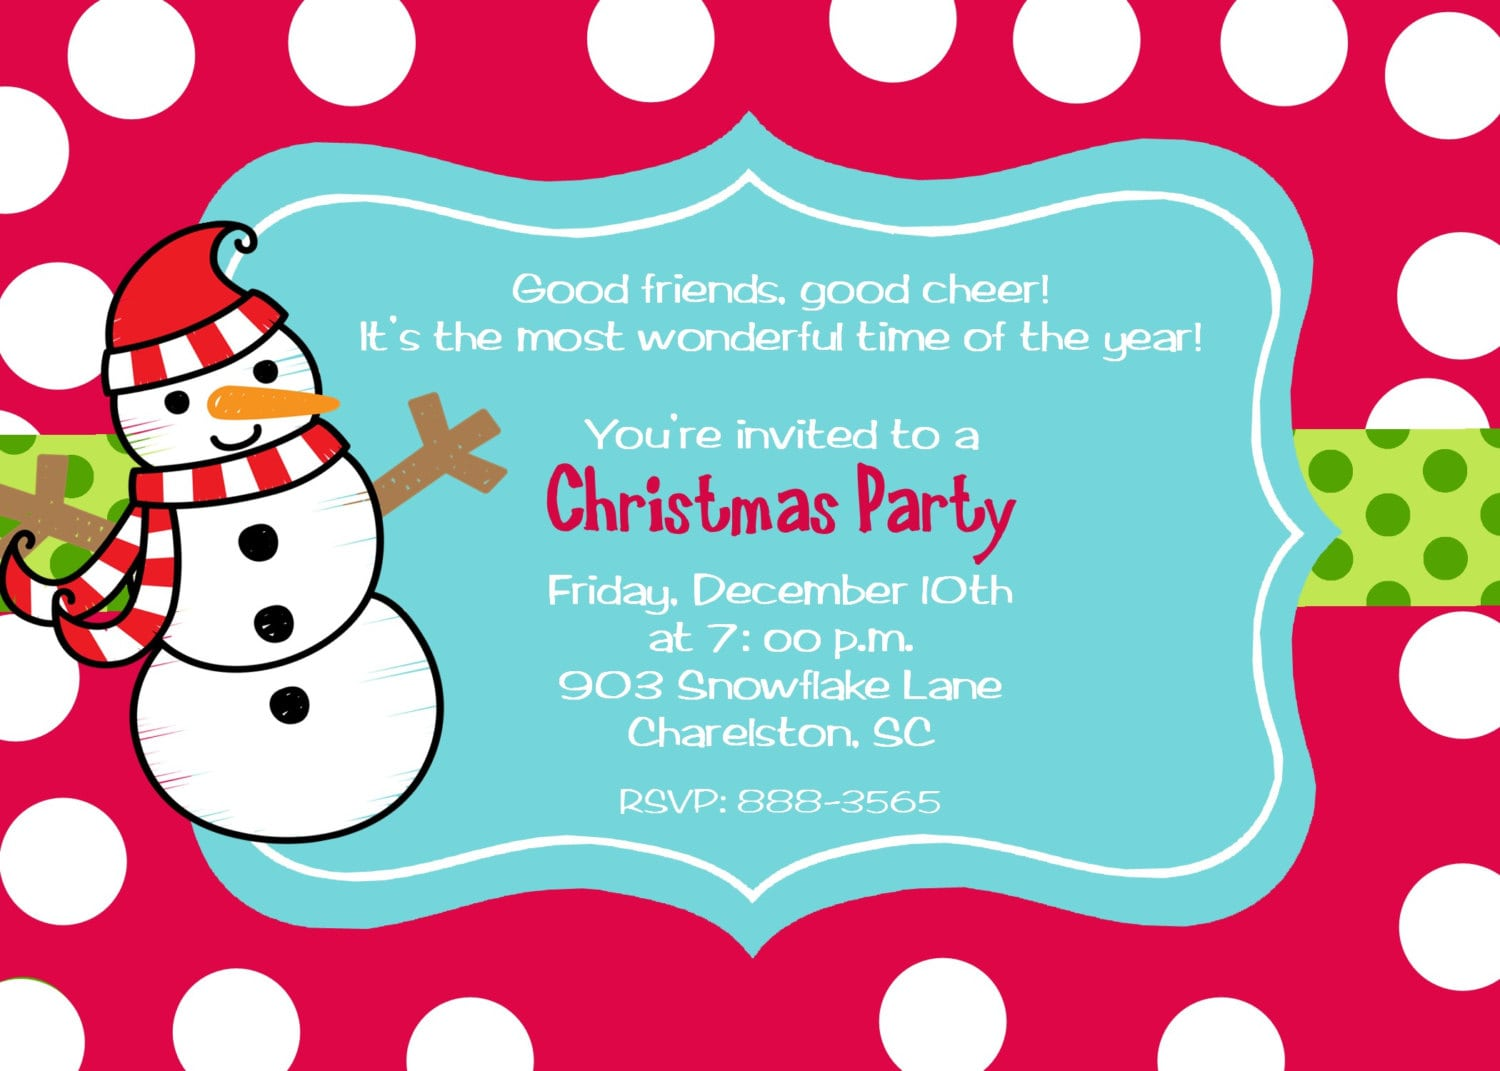 Christmas Party Poem Invitation